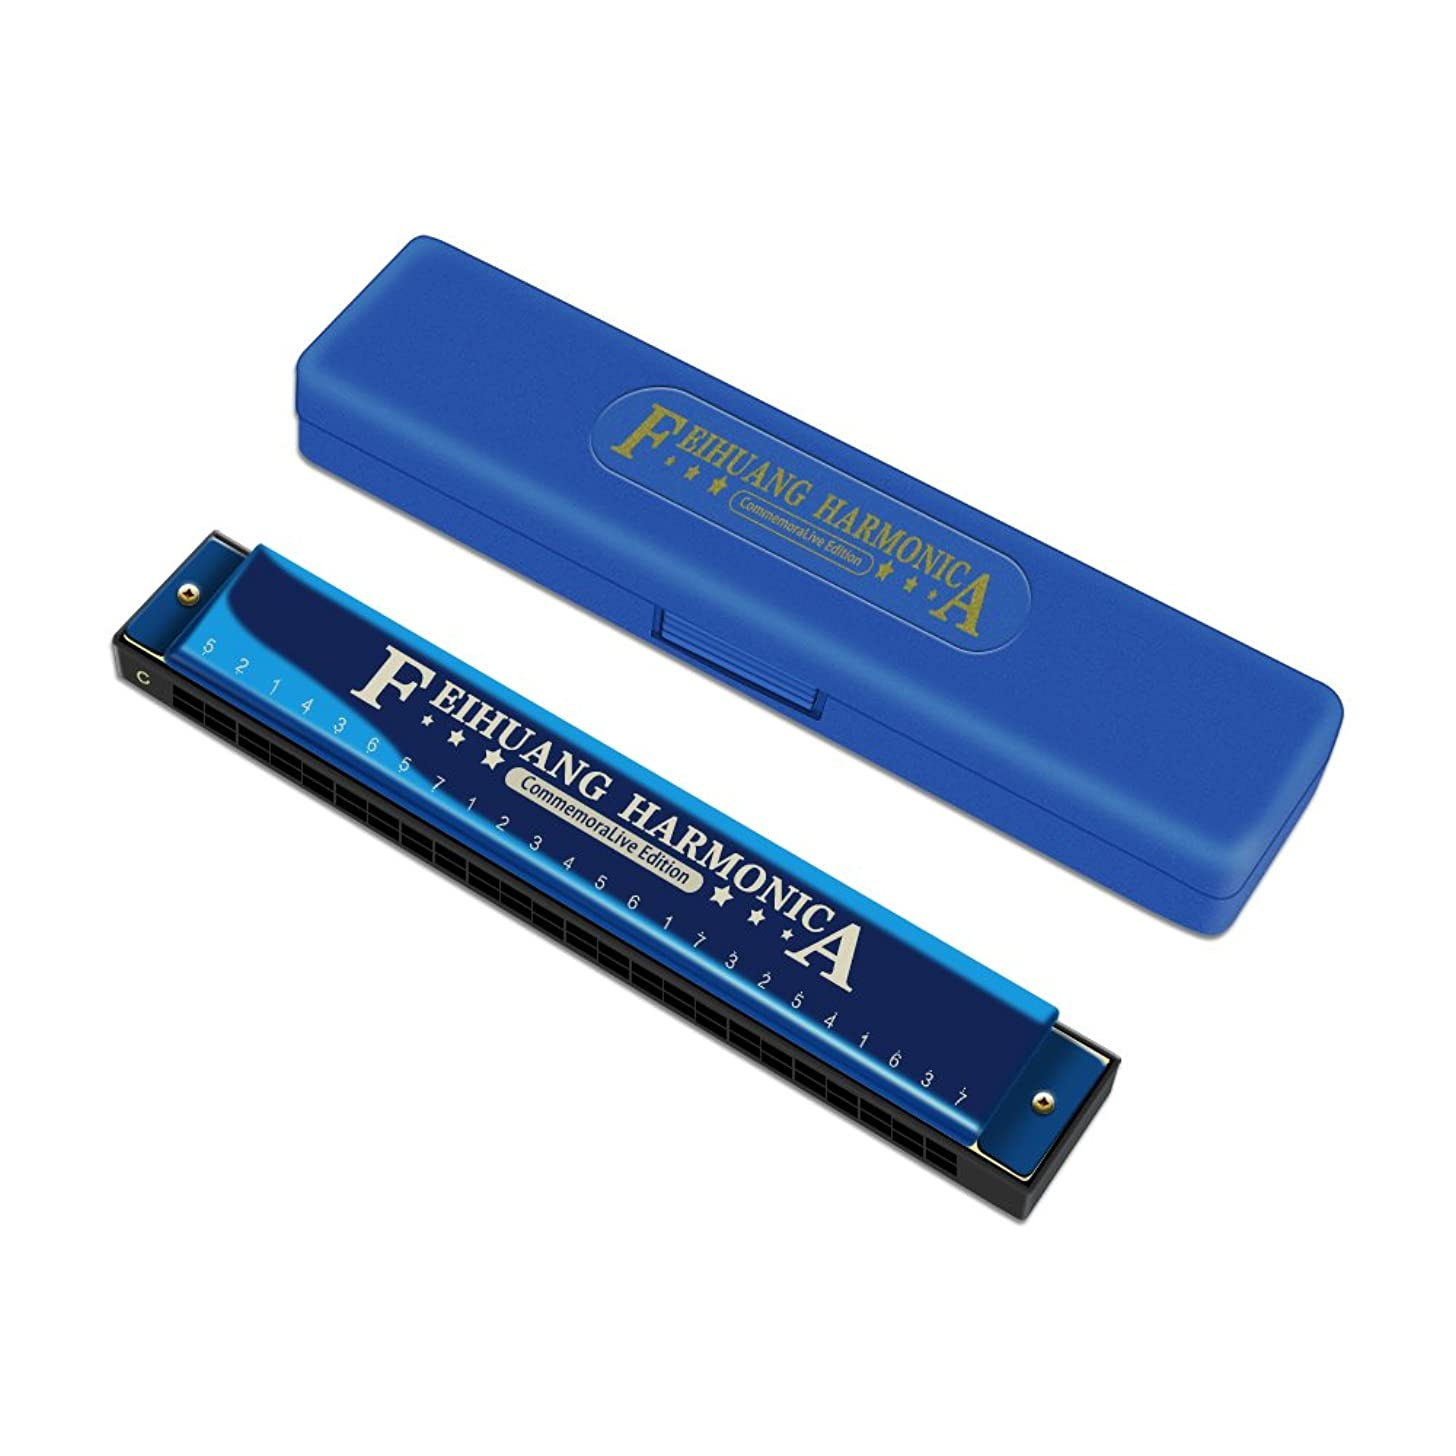 Harmonica for Beginners, Harmonica C, 24 Holes Double Tremolo Harmonica for Kids with Case,Christmas Gifts for kids